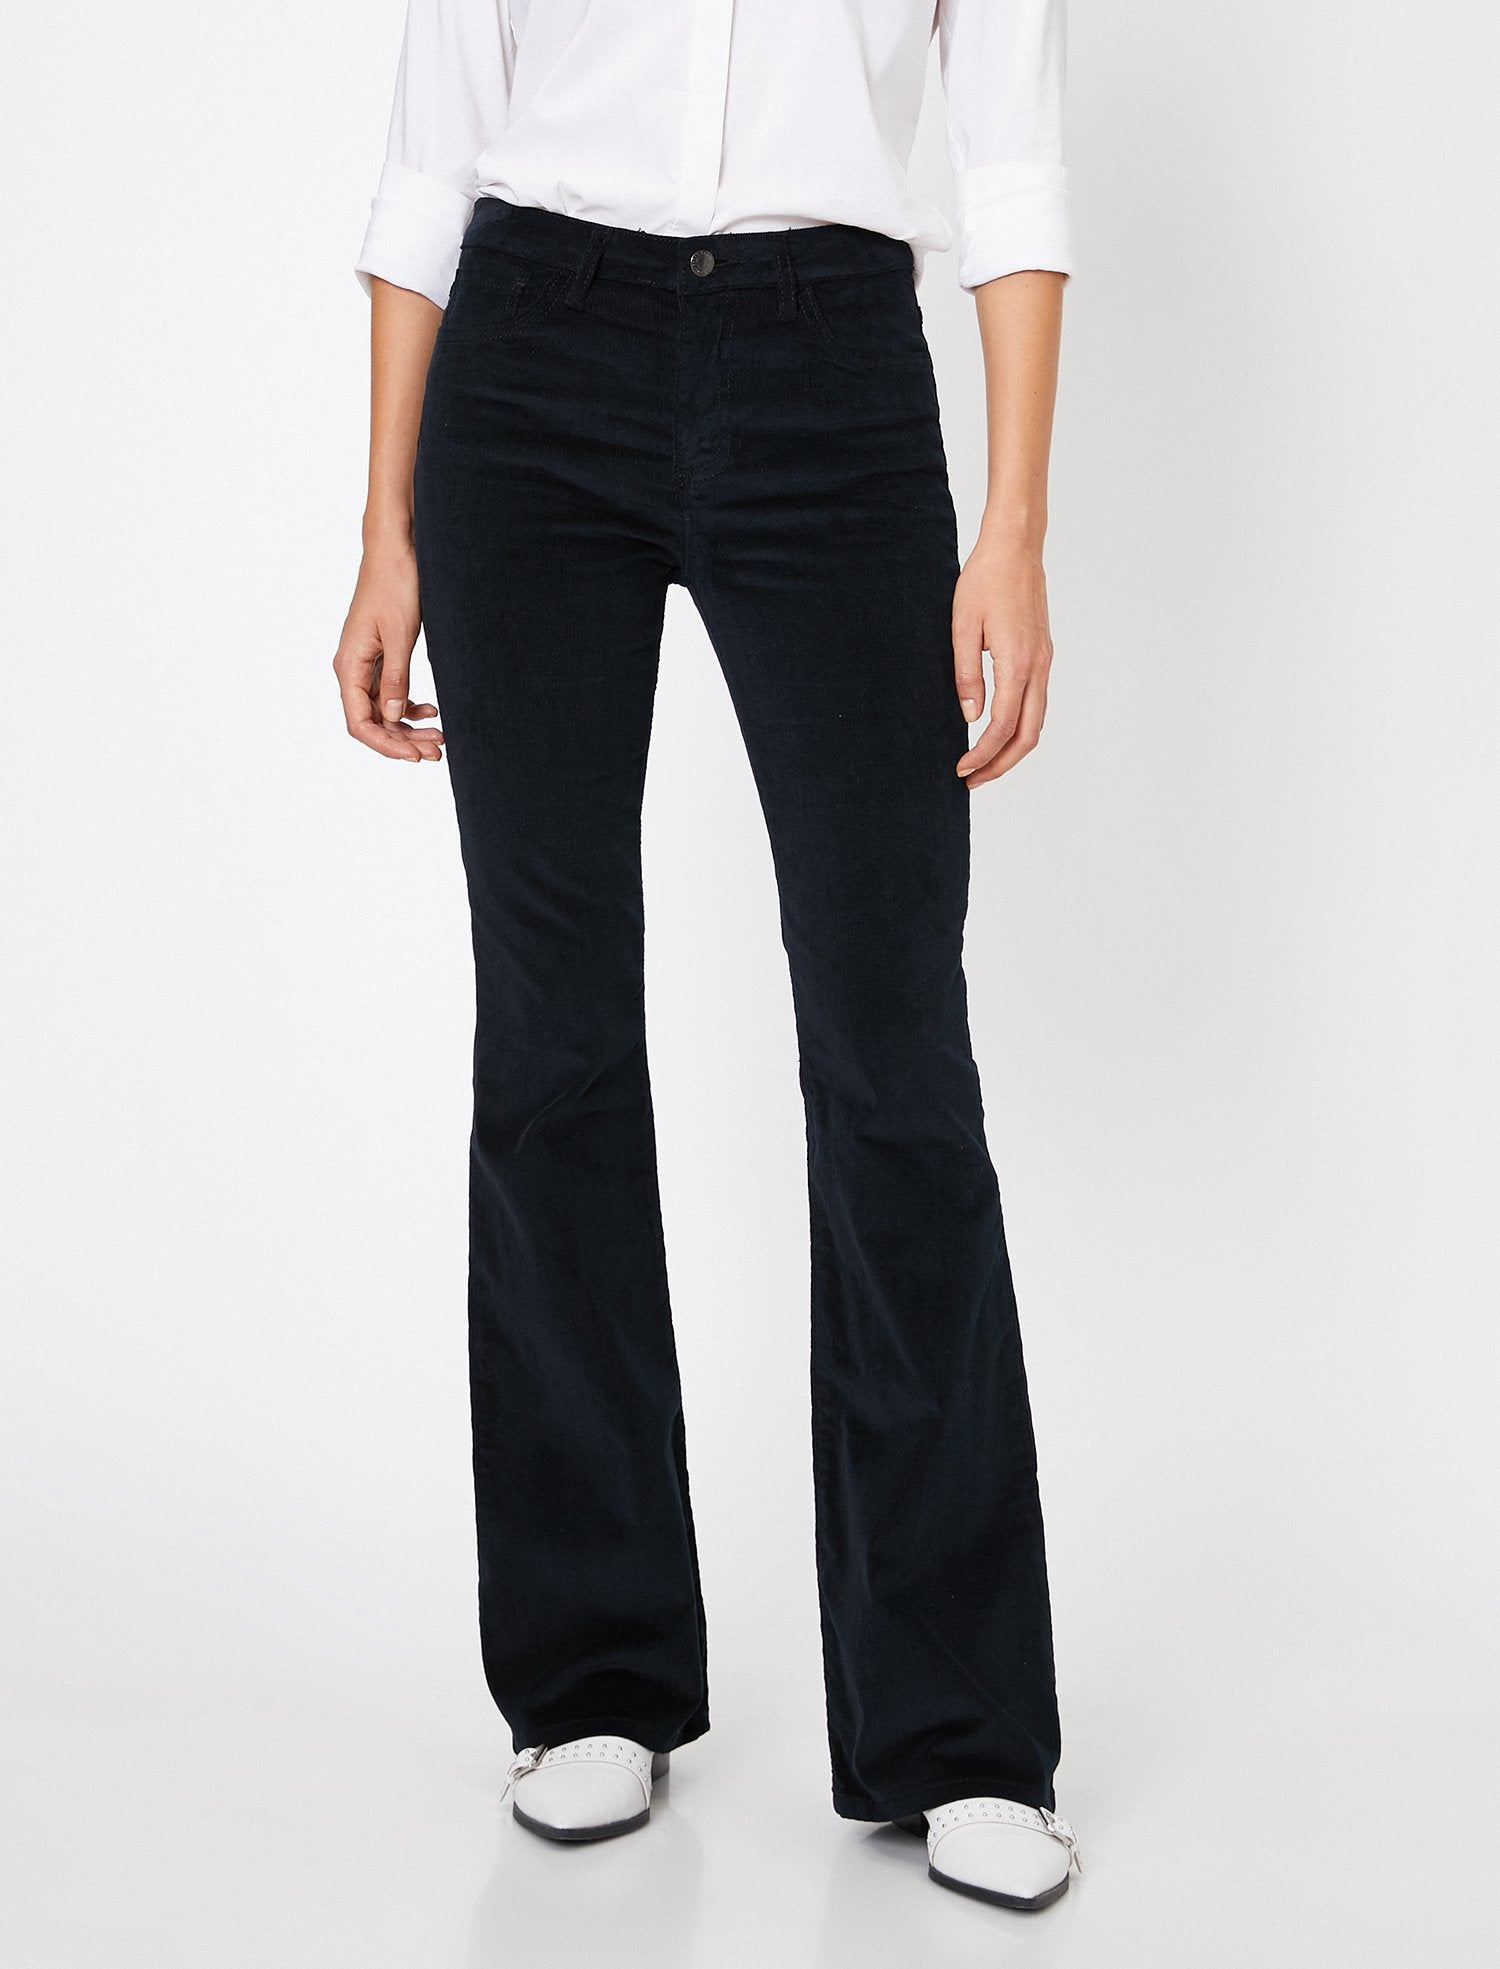 Corduroy Flare Cut Pants in Black